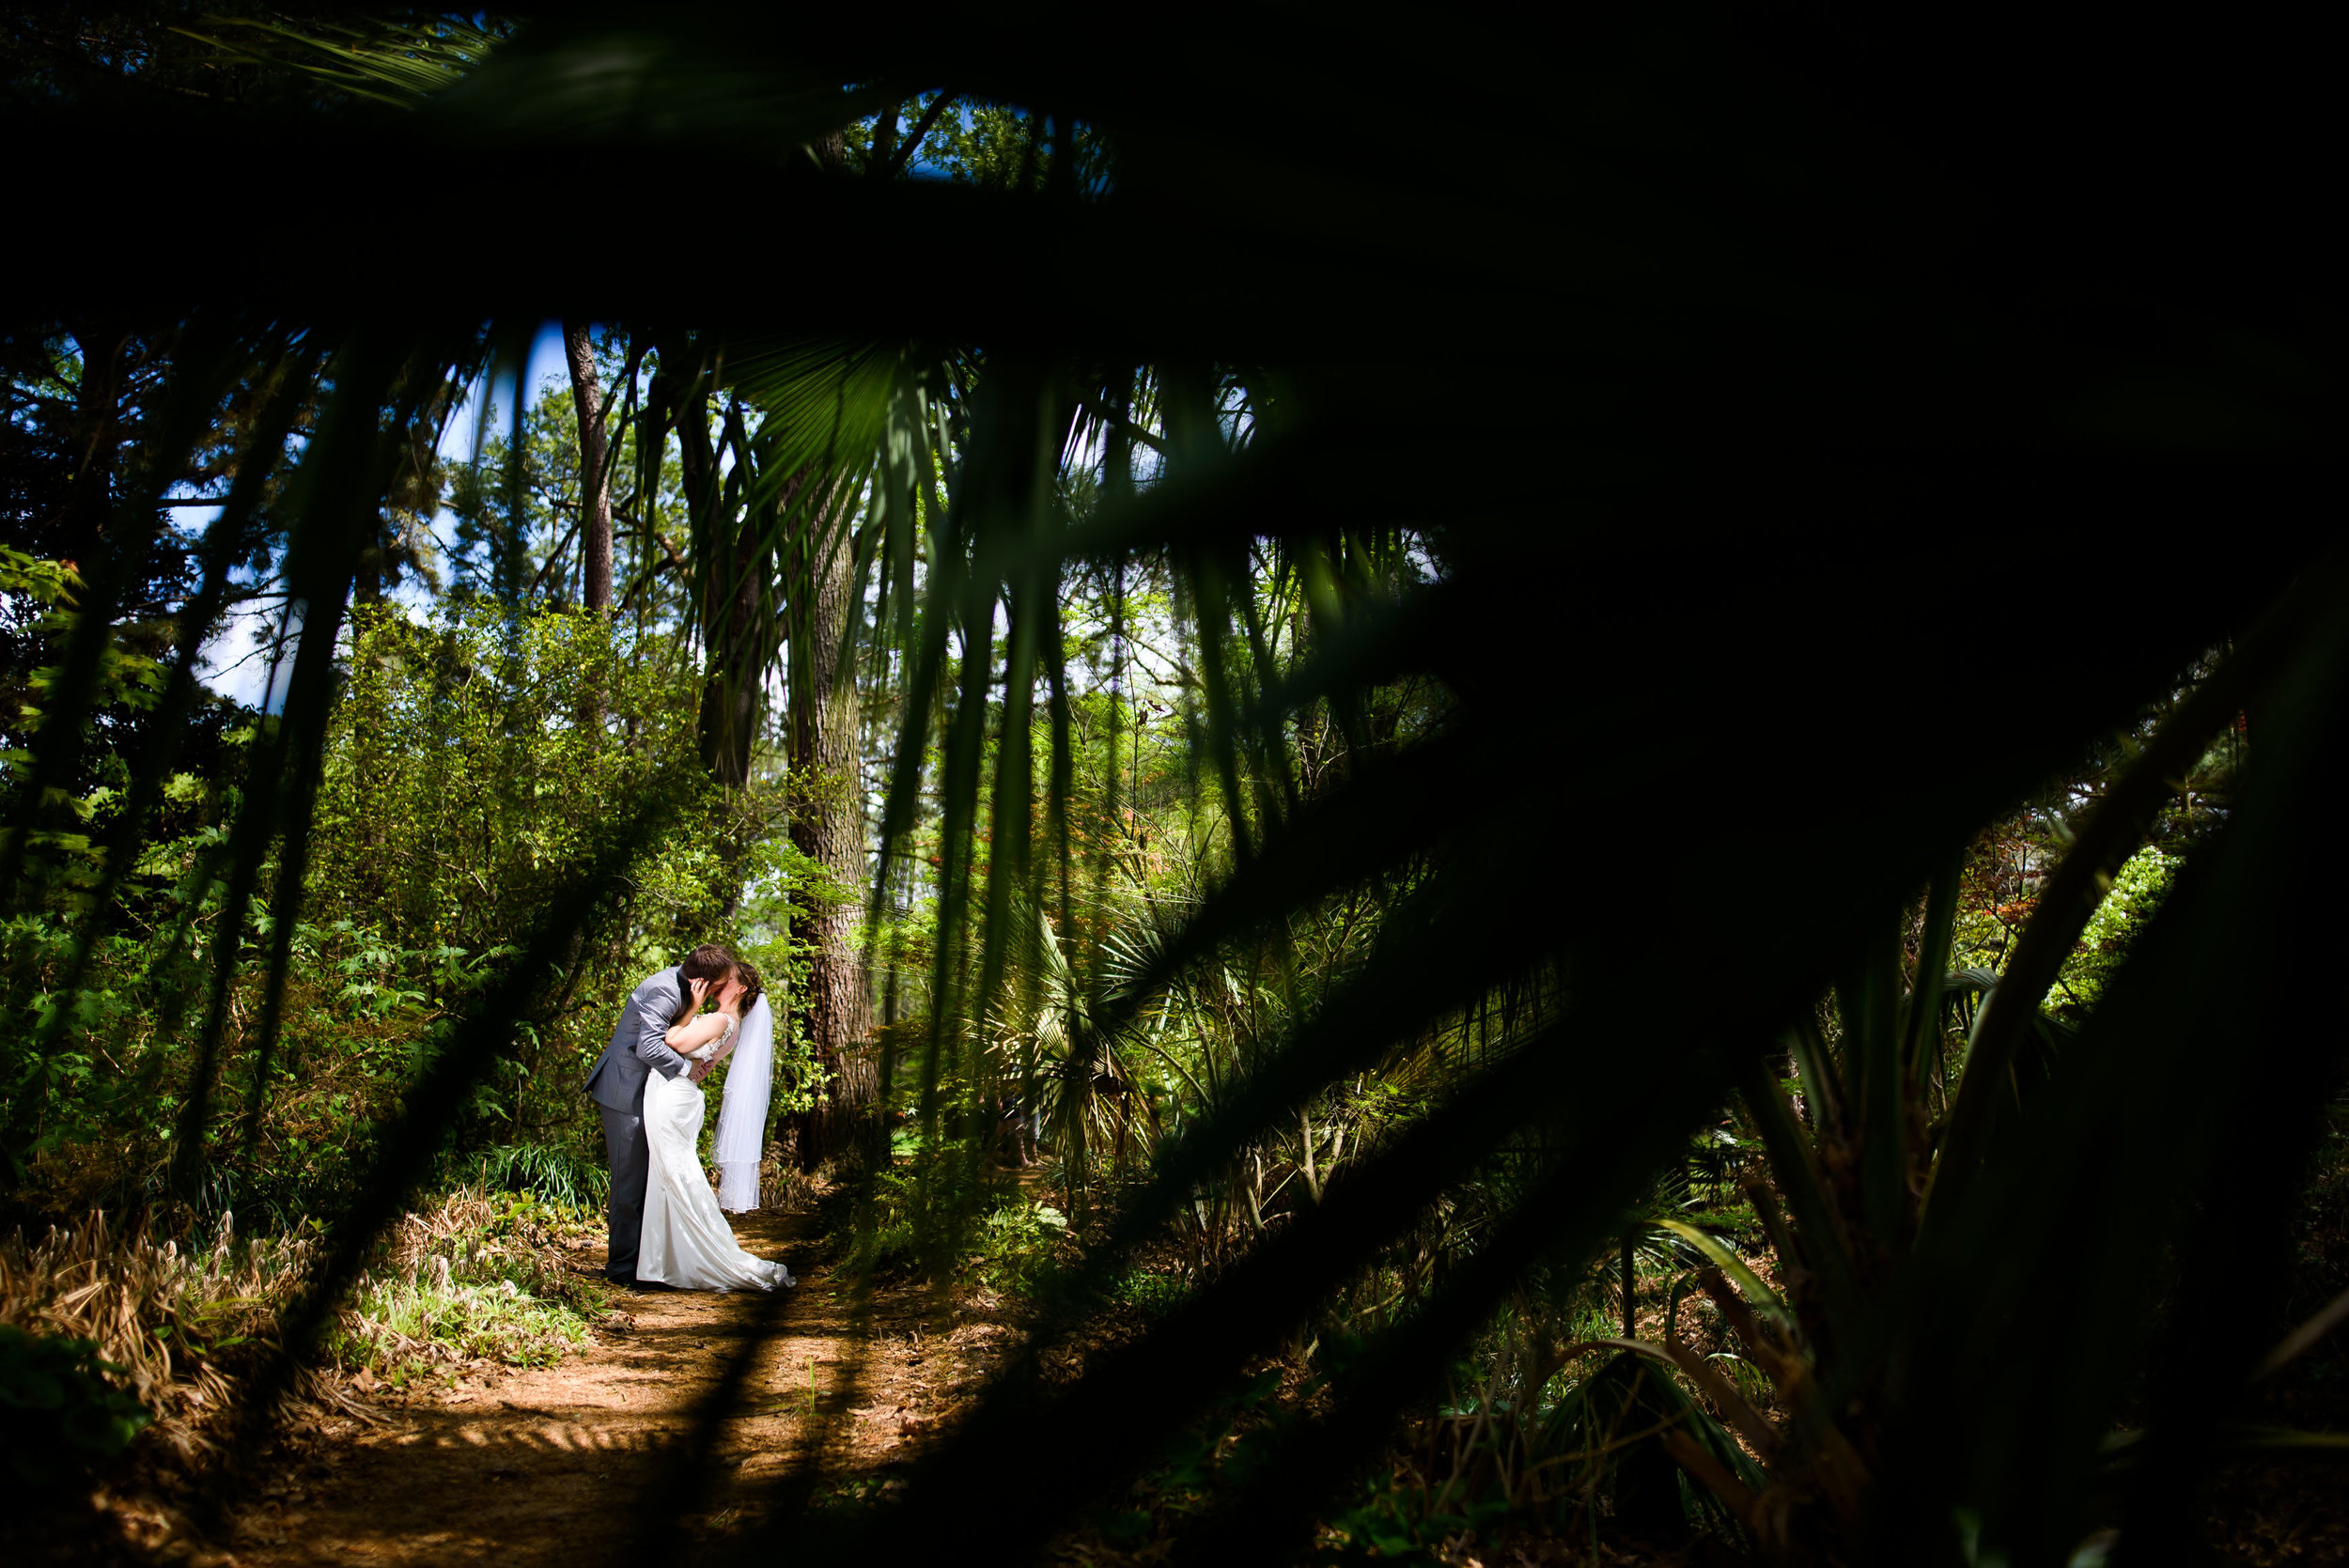 Make sure to scroll all the way to the end for more yummy 24mm f/1.4 photos! :) First wedding I was able to use it on and so far lovin it!